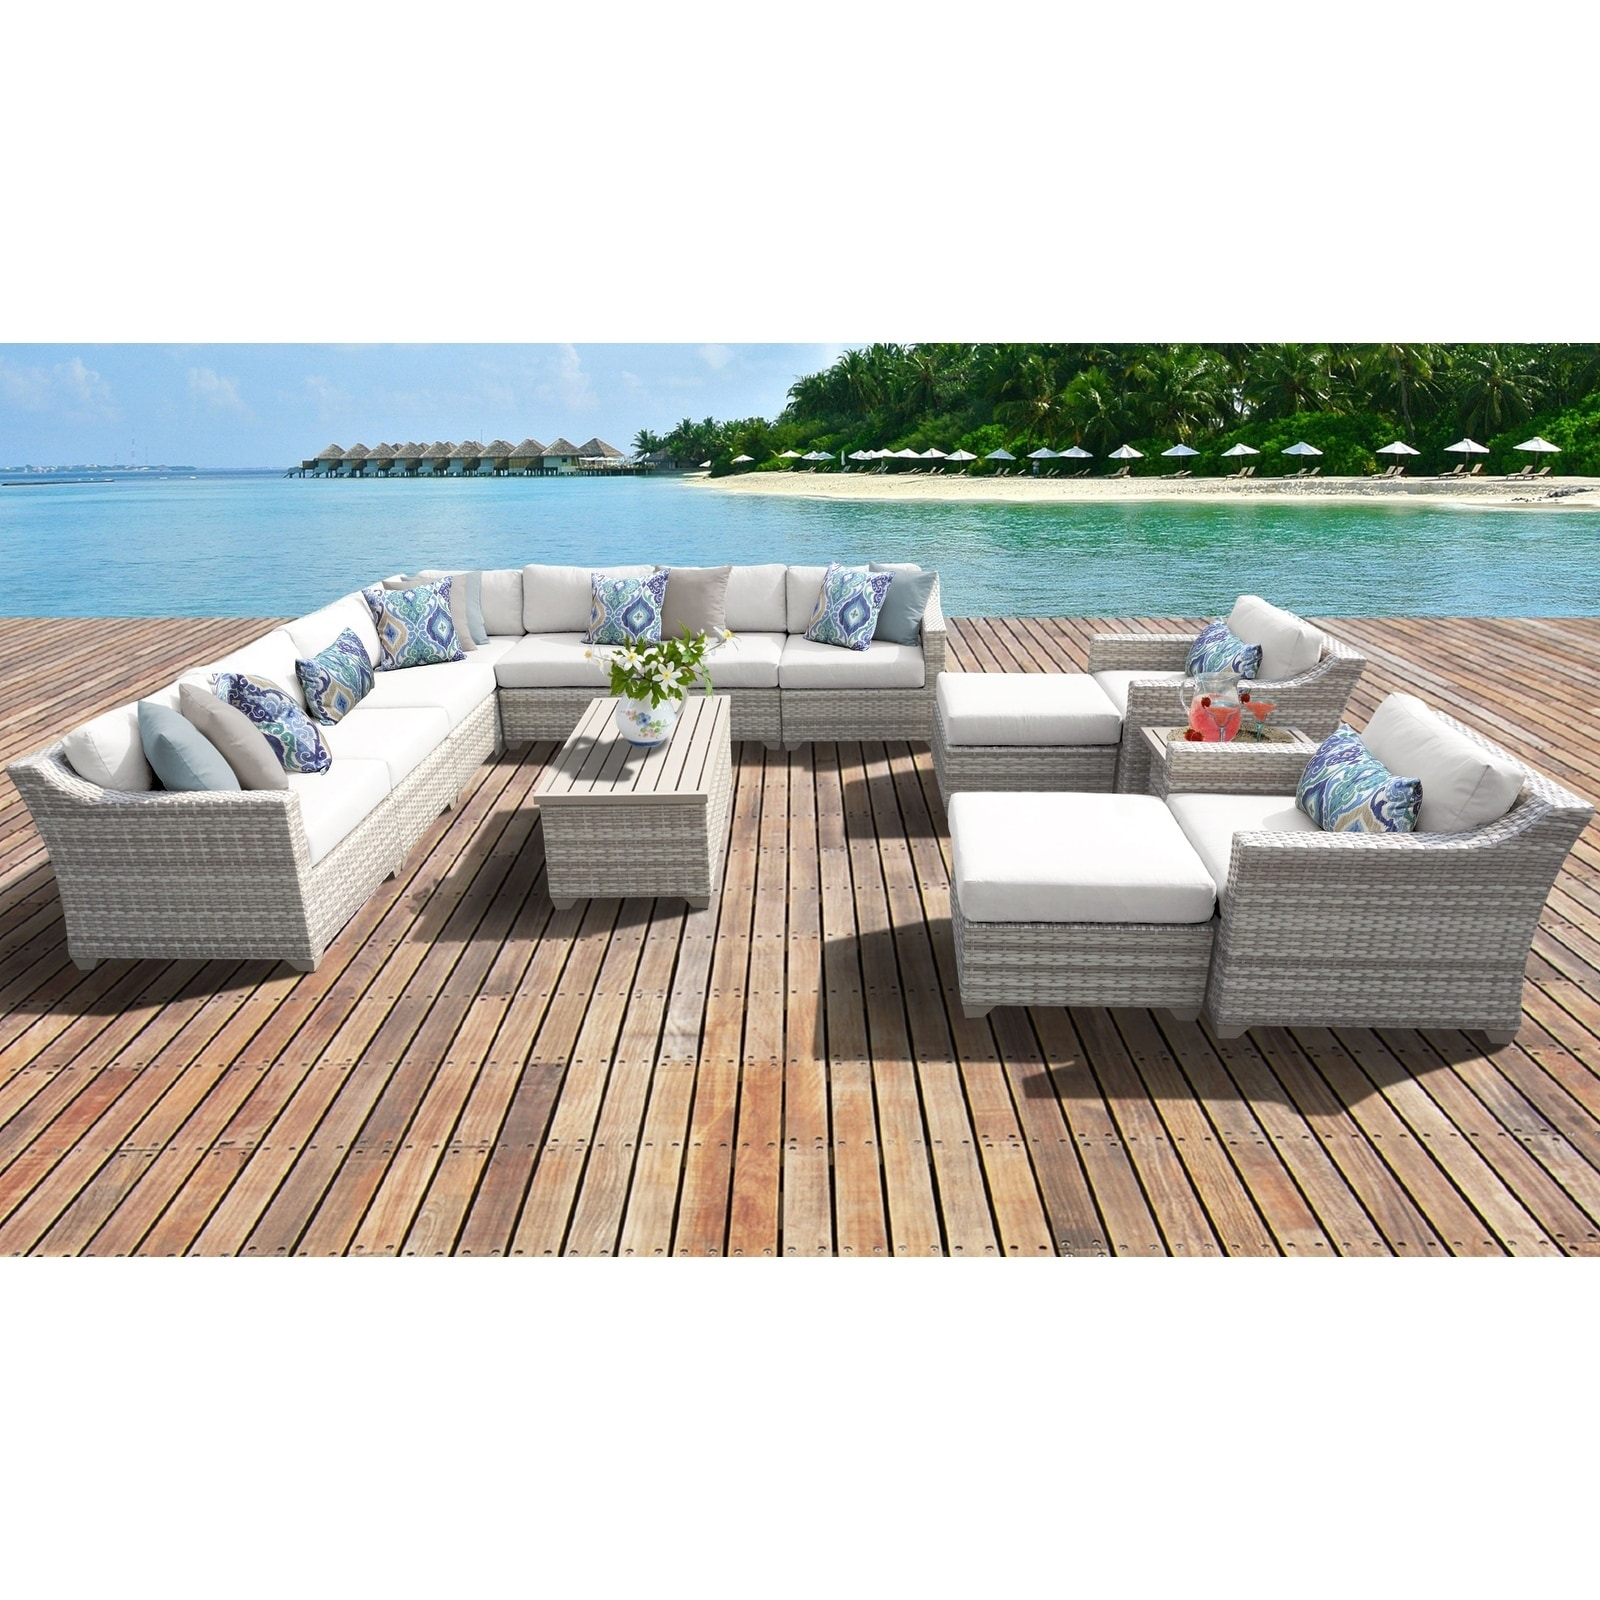 Fairmont Patio Furniture.Details About Fairmont 13 Piece Outdoor Wicker Patio Furniture Set 13a